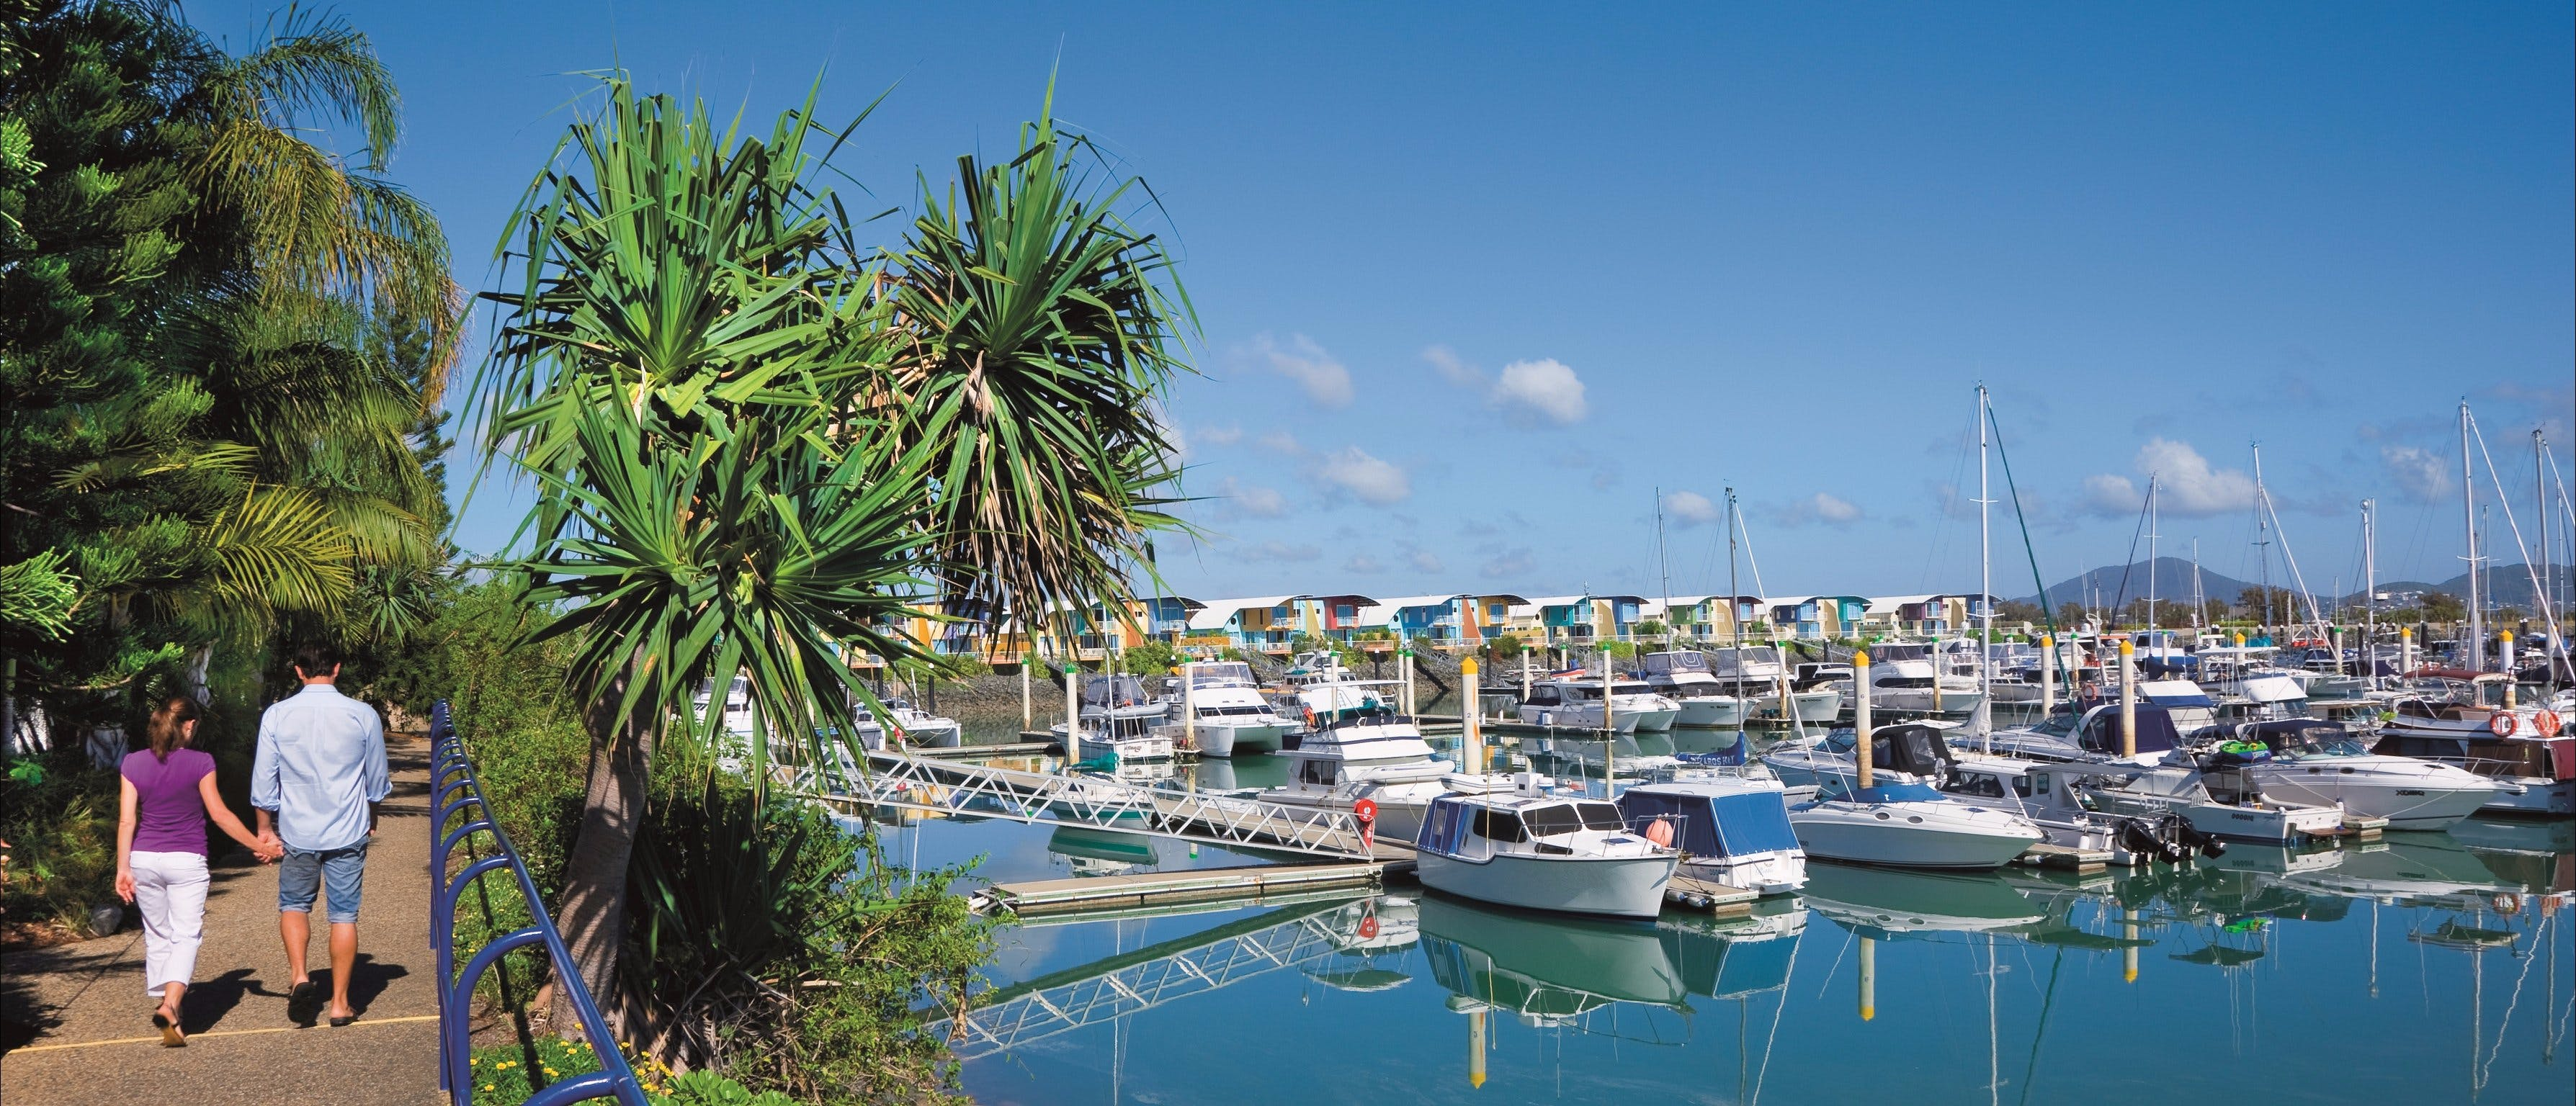 Keppel Bay Fishing Adventure - SA Accommodation